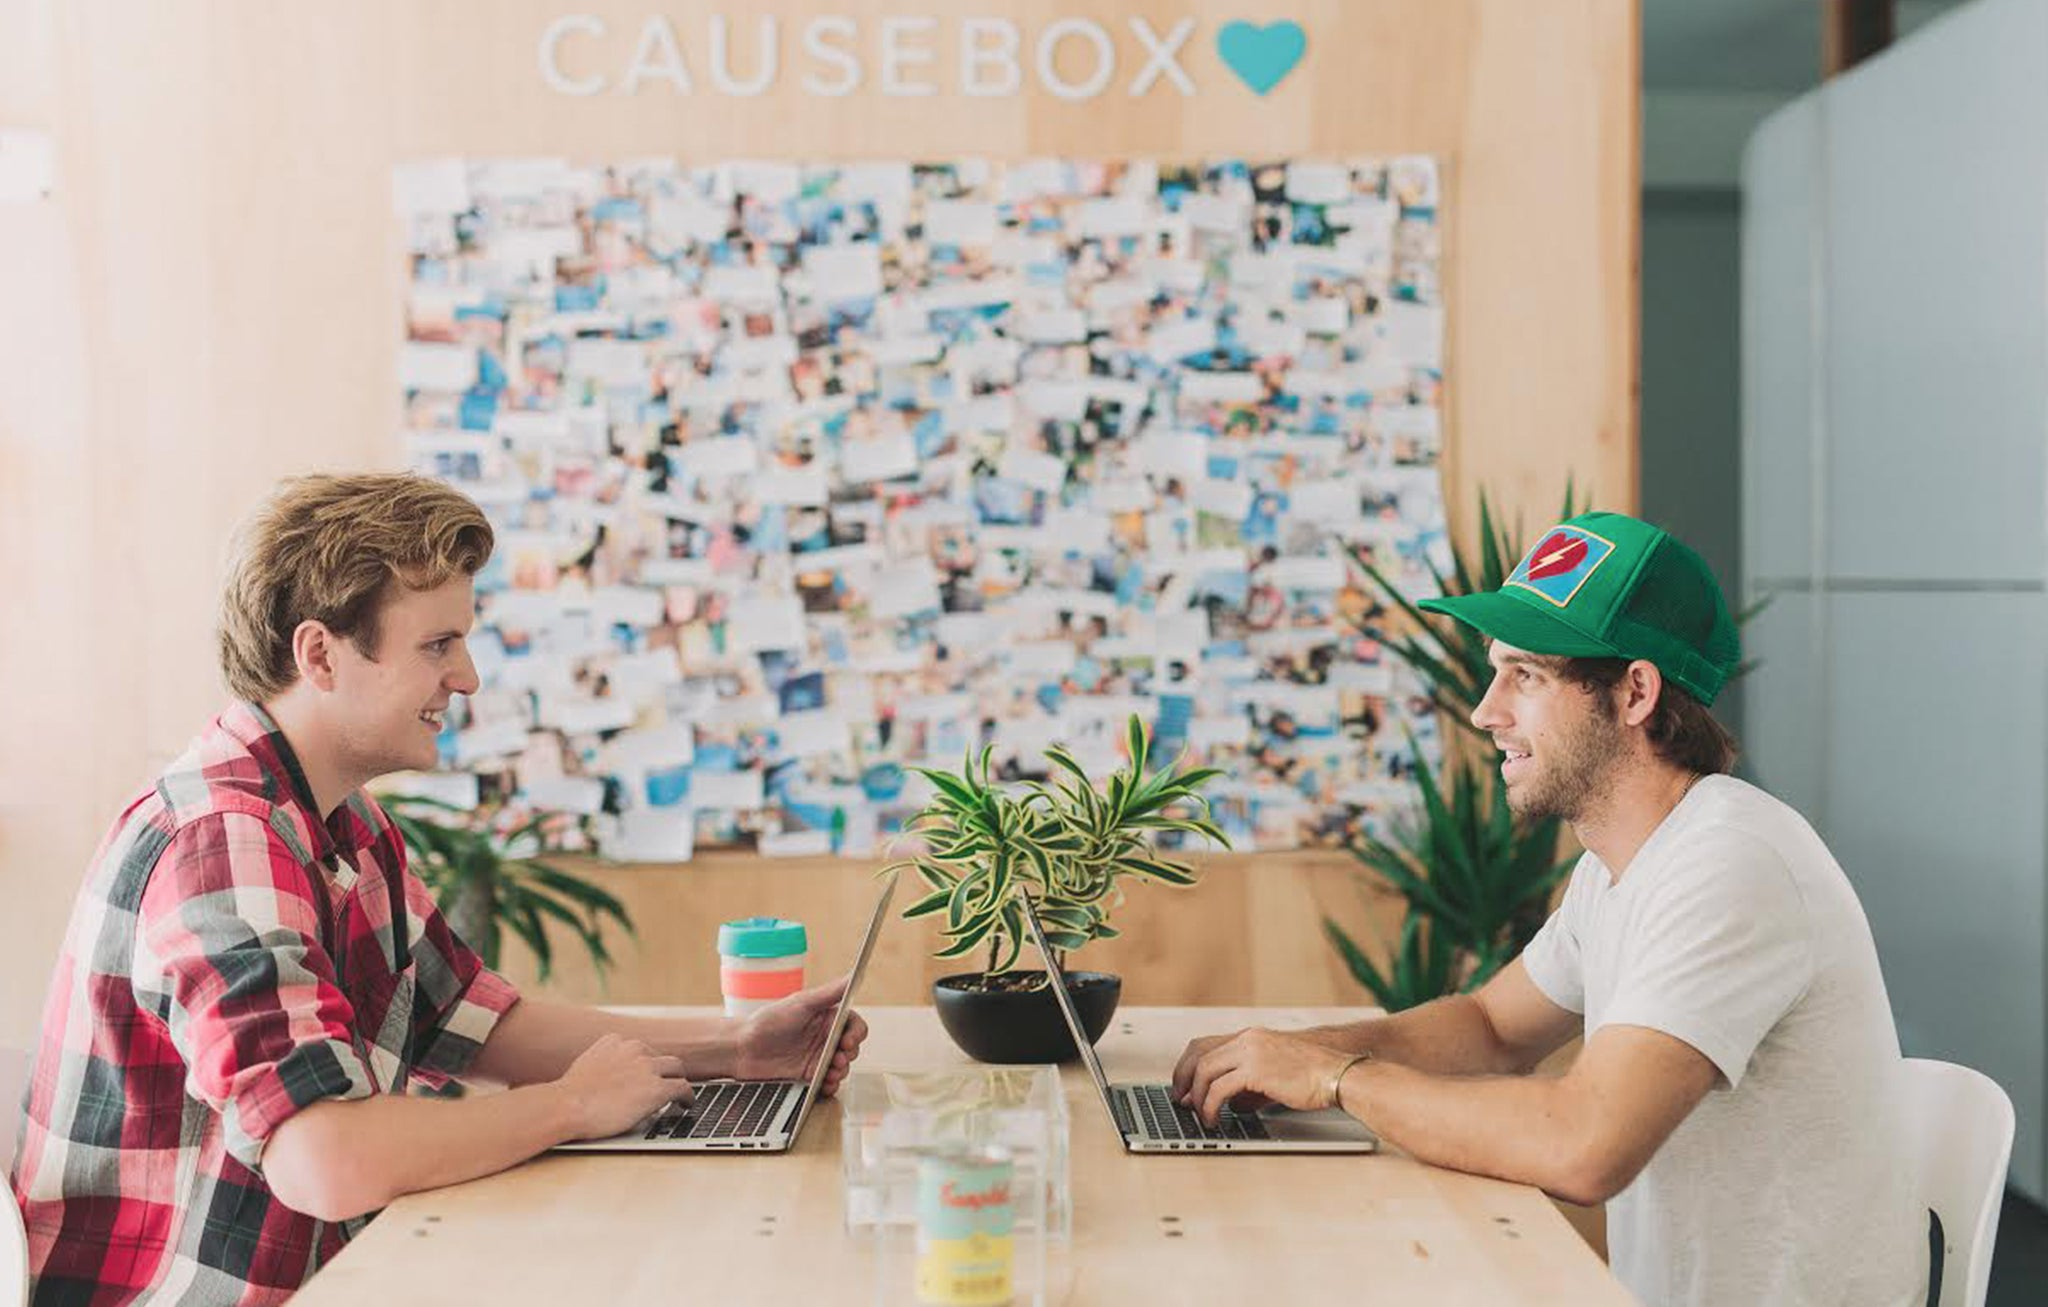 CAUSEBOX, co-founders